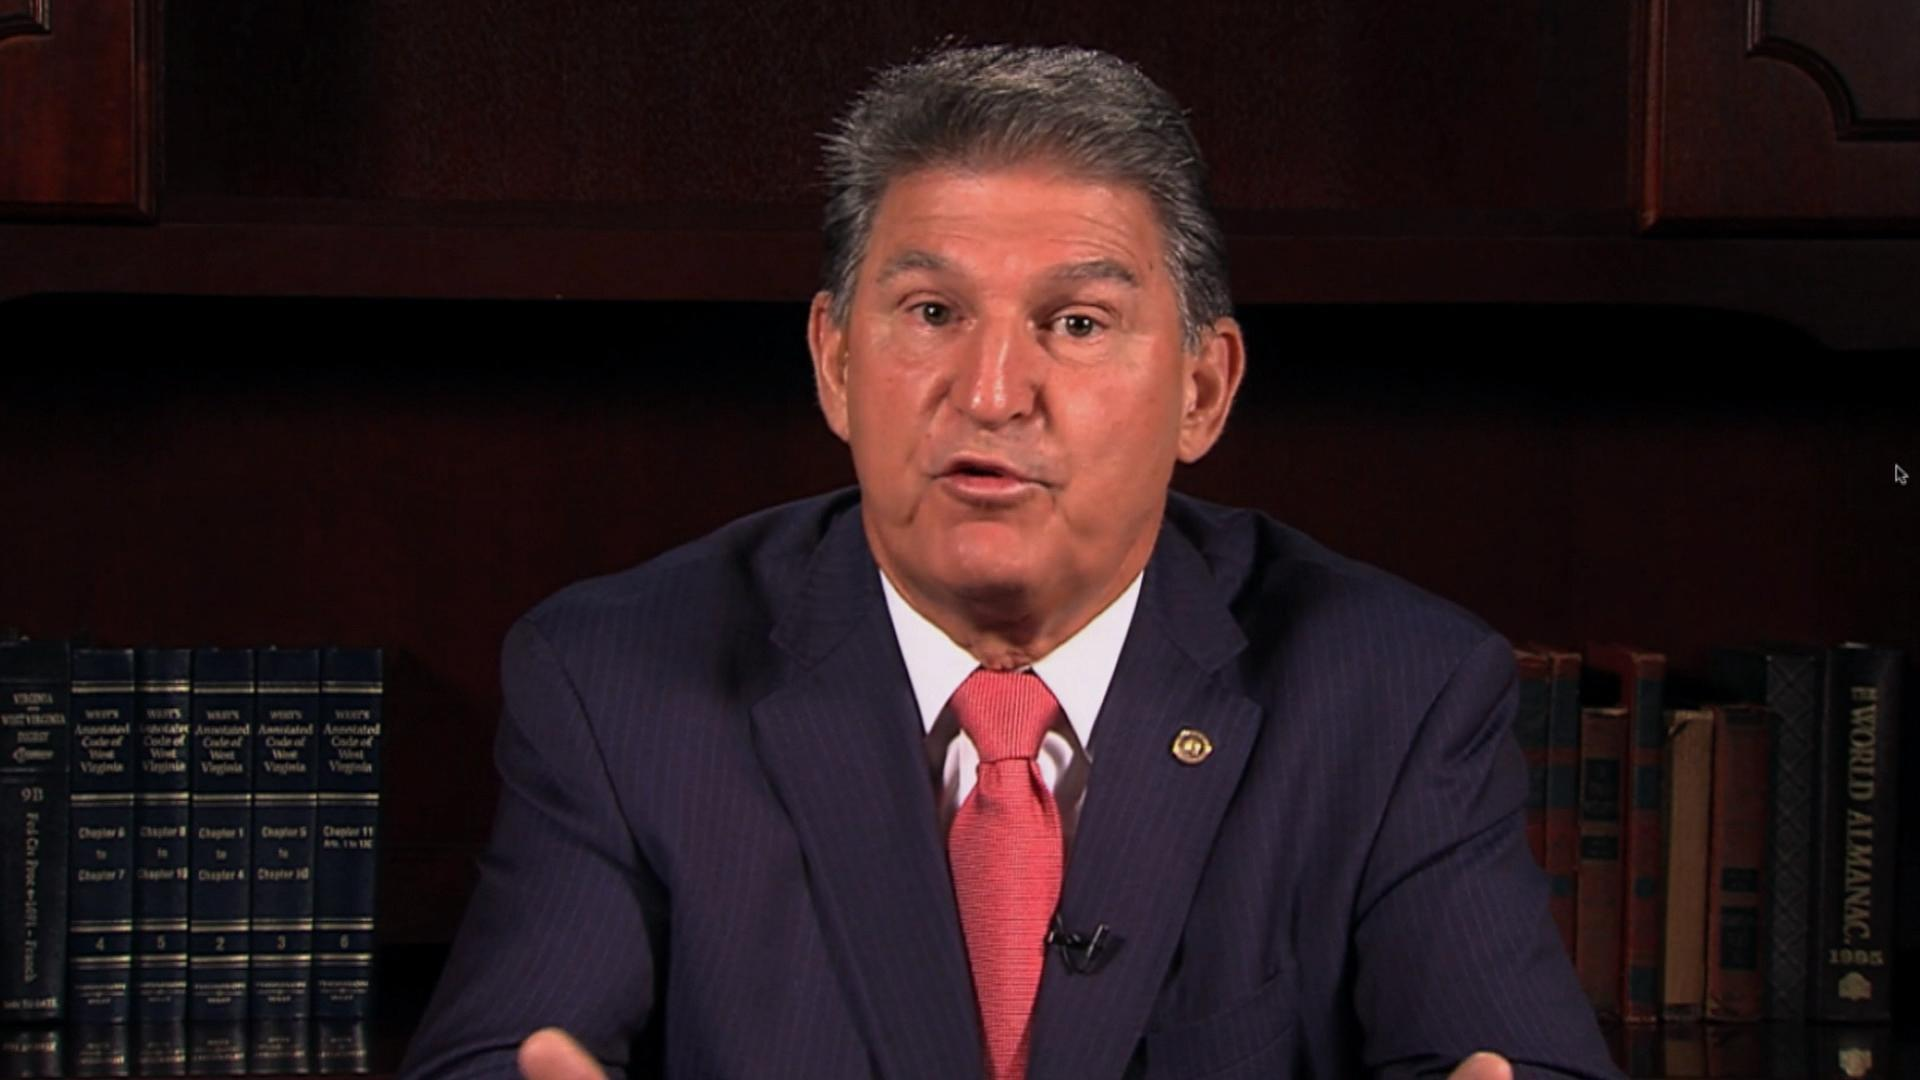 Sen. Manchin makes health care his central focus